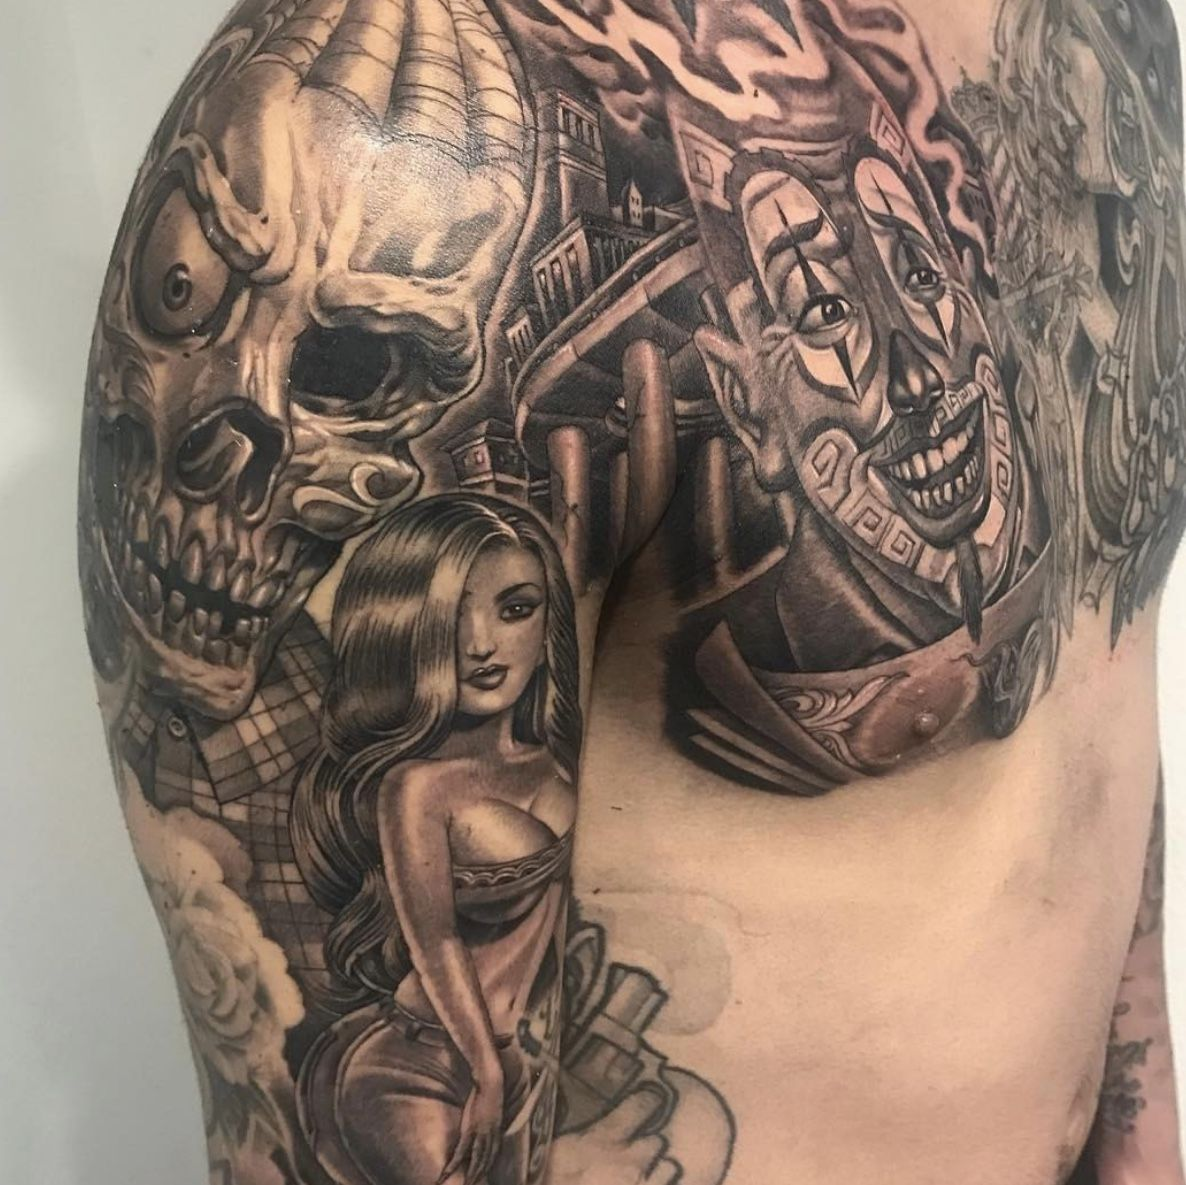 Different Styles Of Tattoos By Mister Cartoon On Tattoos Mr